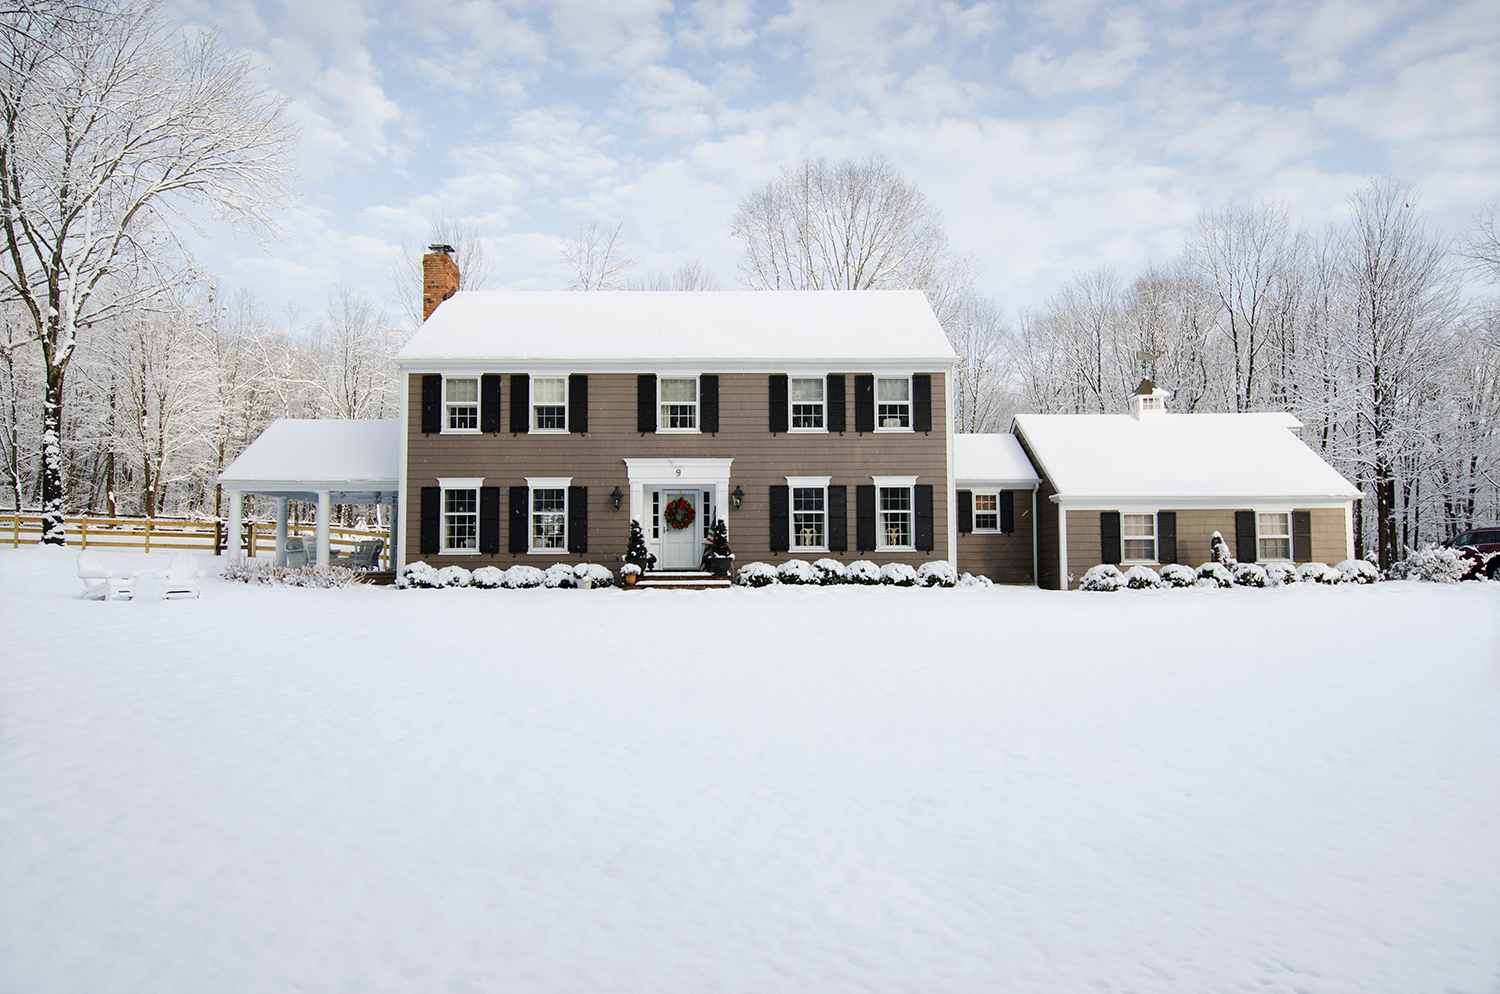 Colonial House Covered in Snow